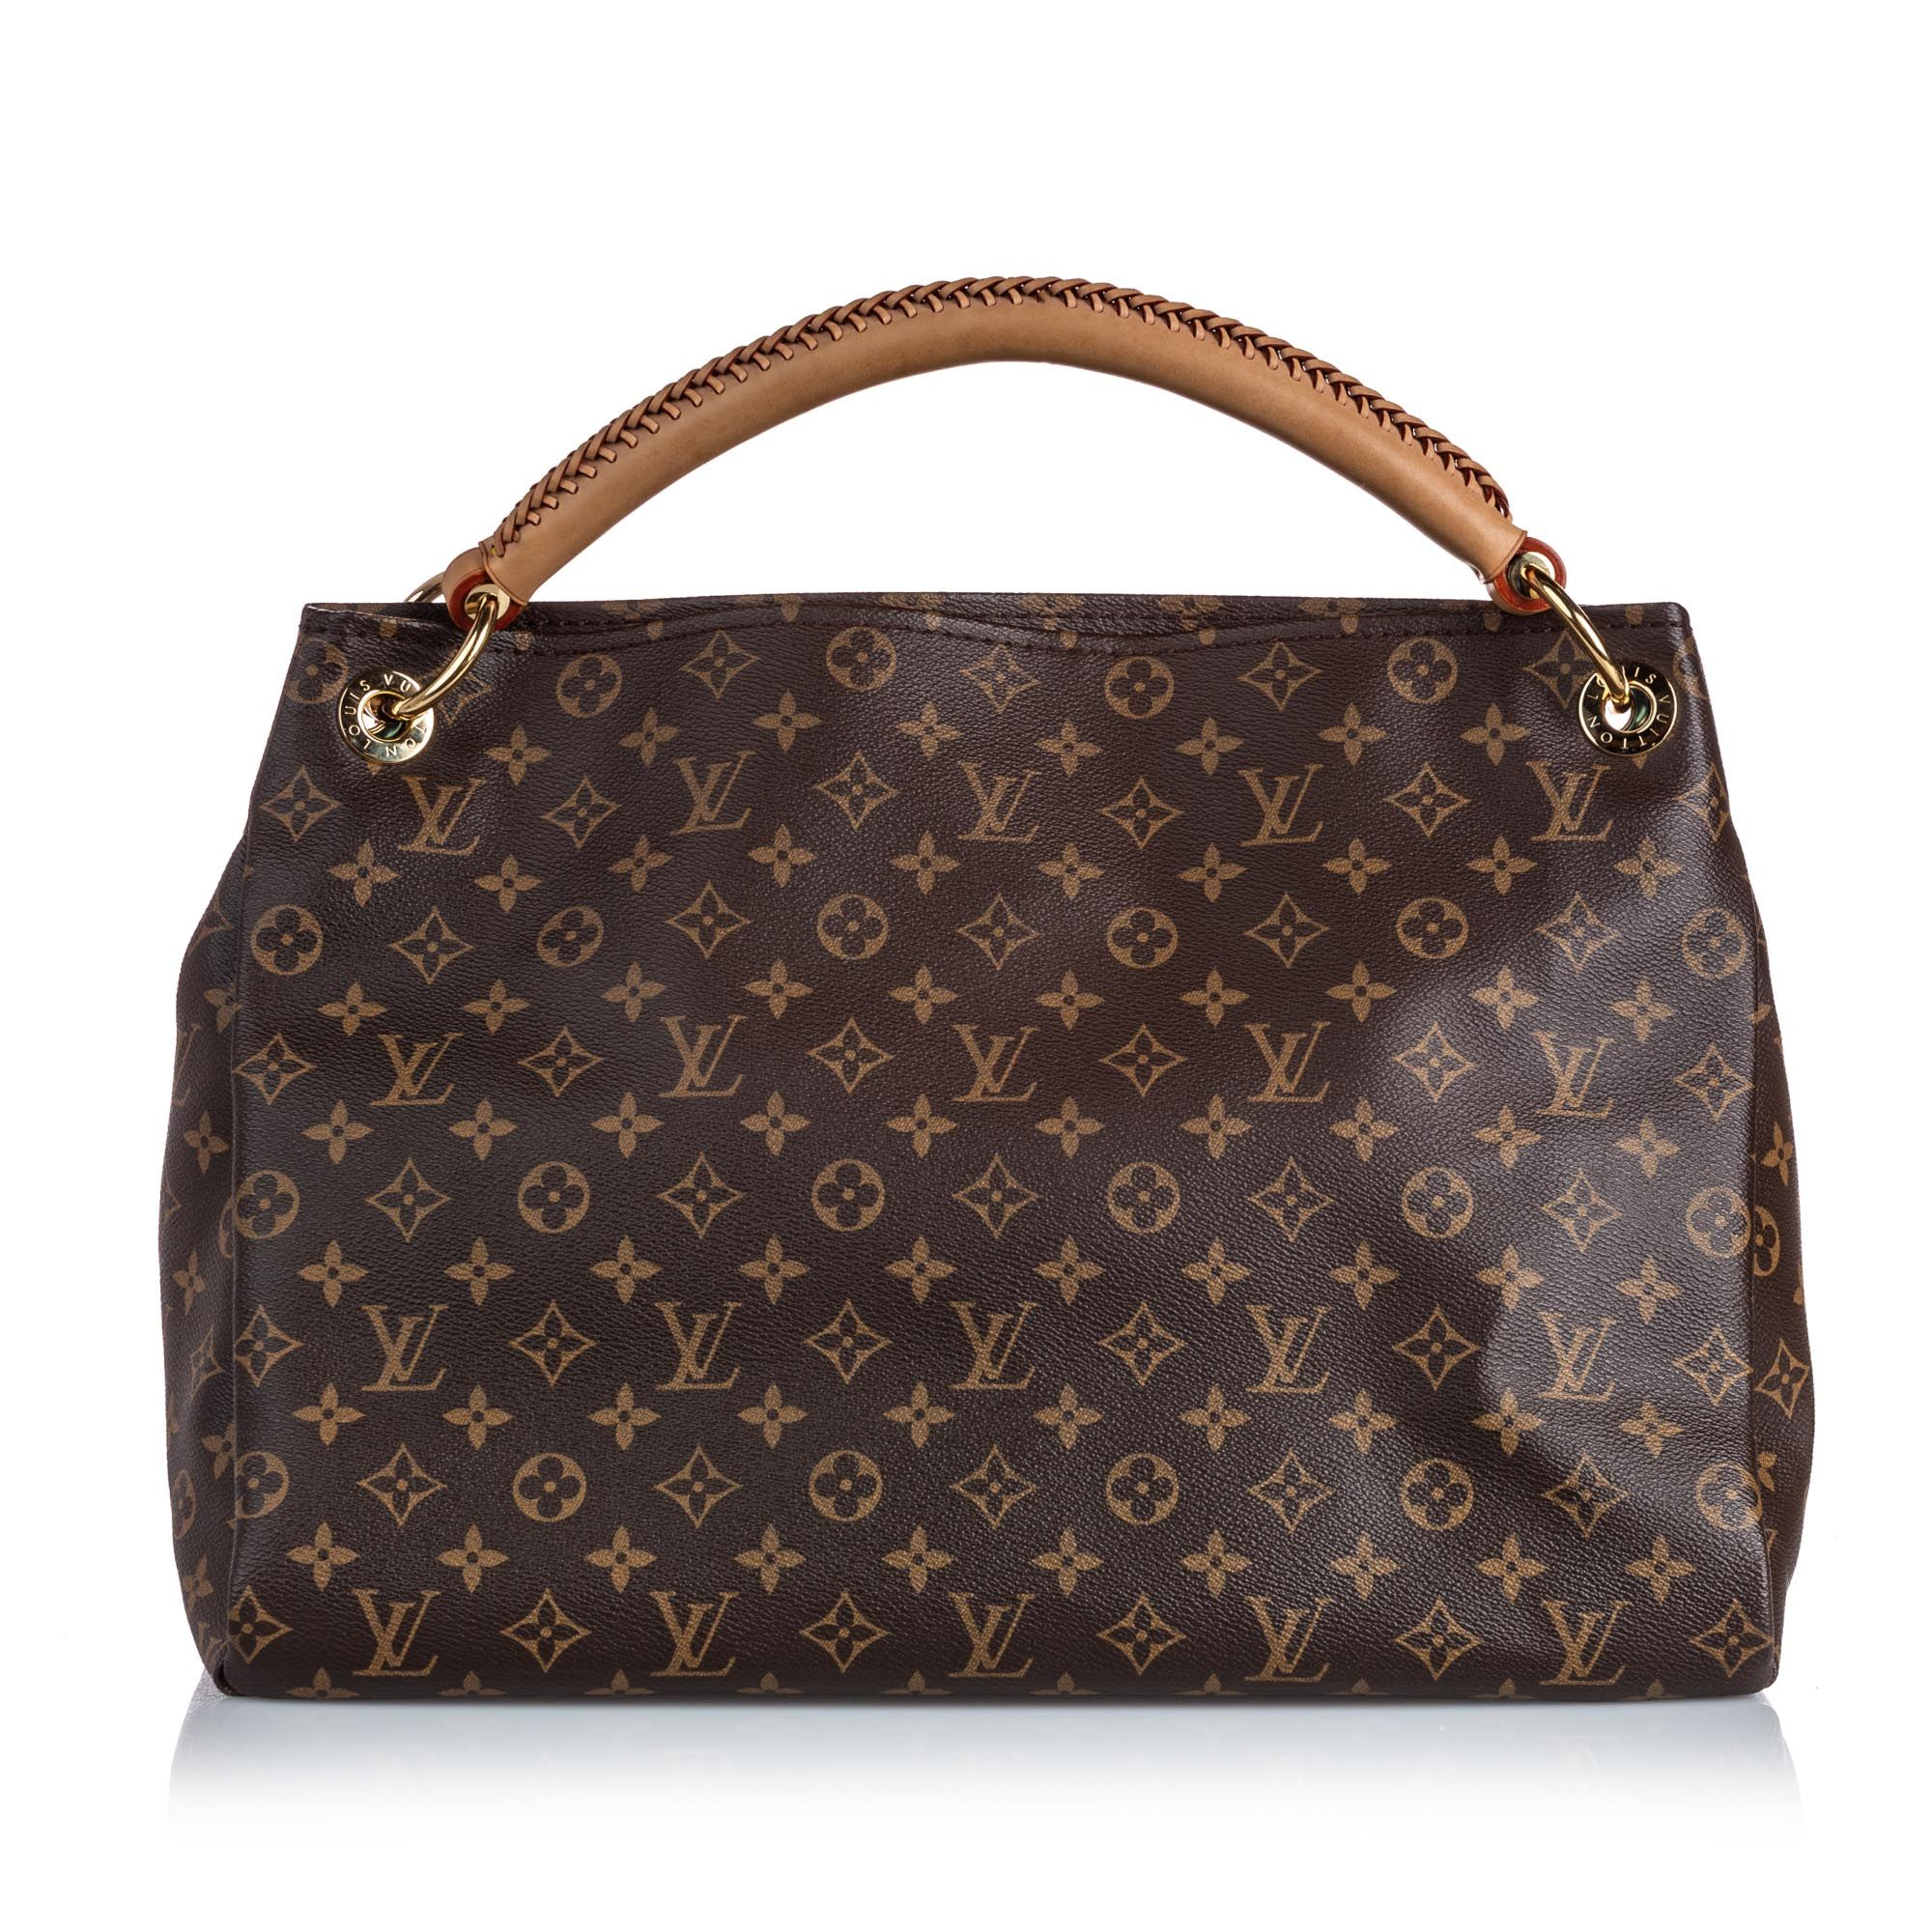 Vintage Louis Vuitton Monogram Artsy MM Brown